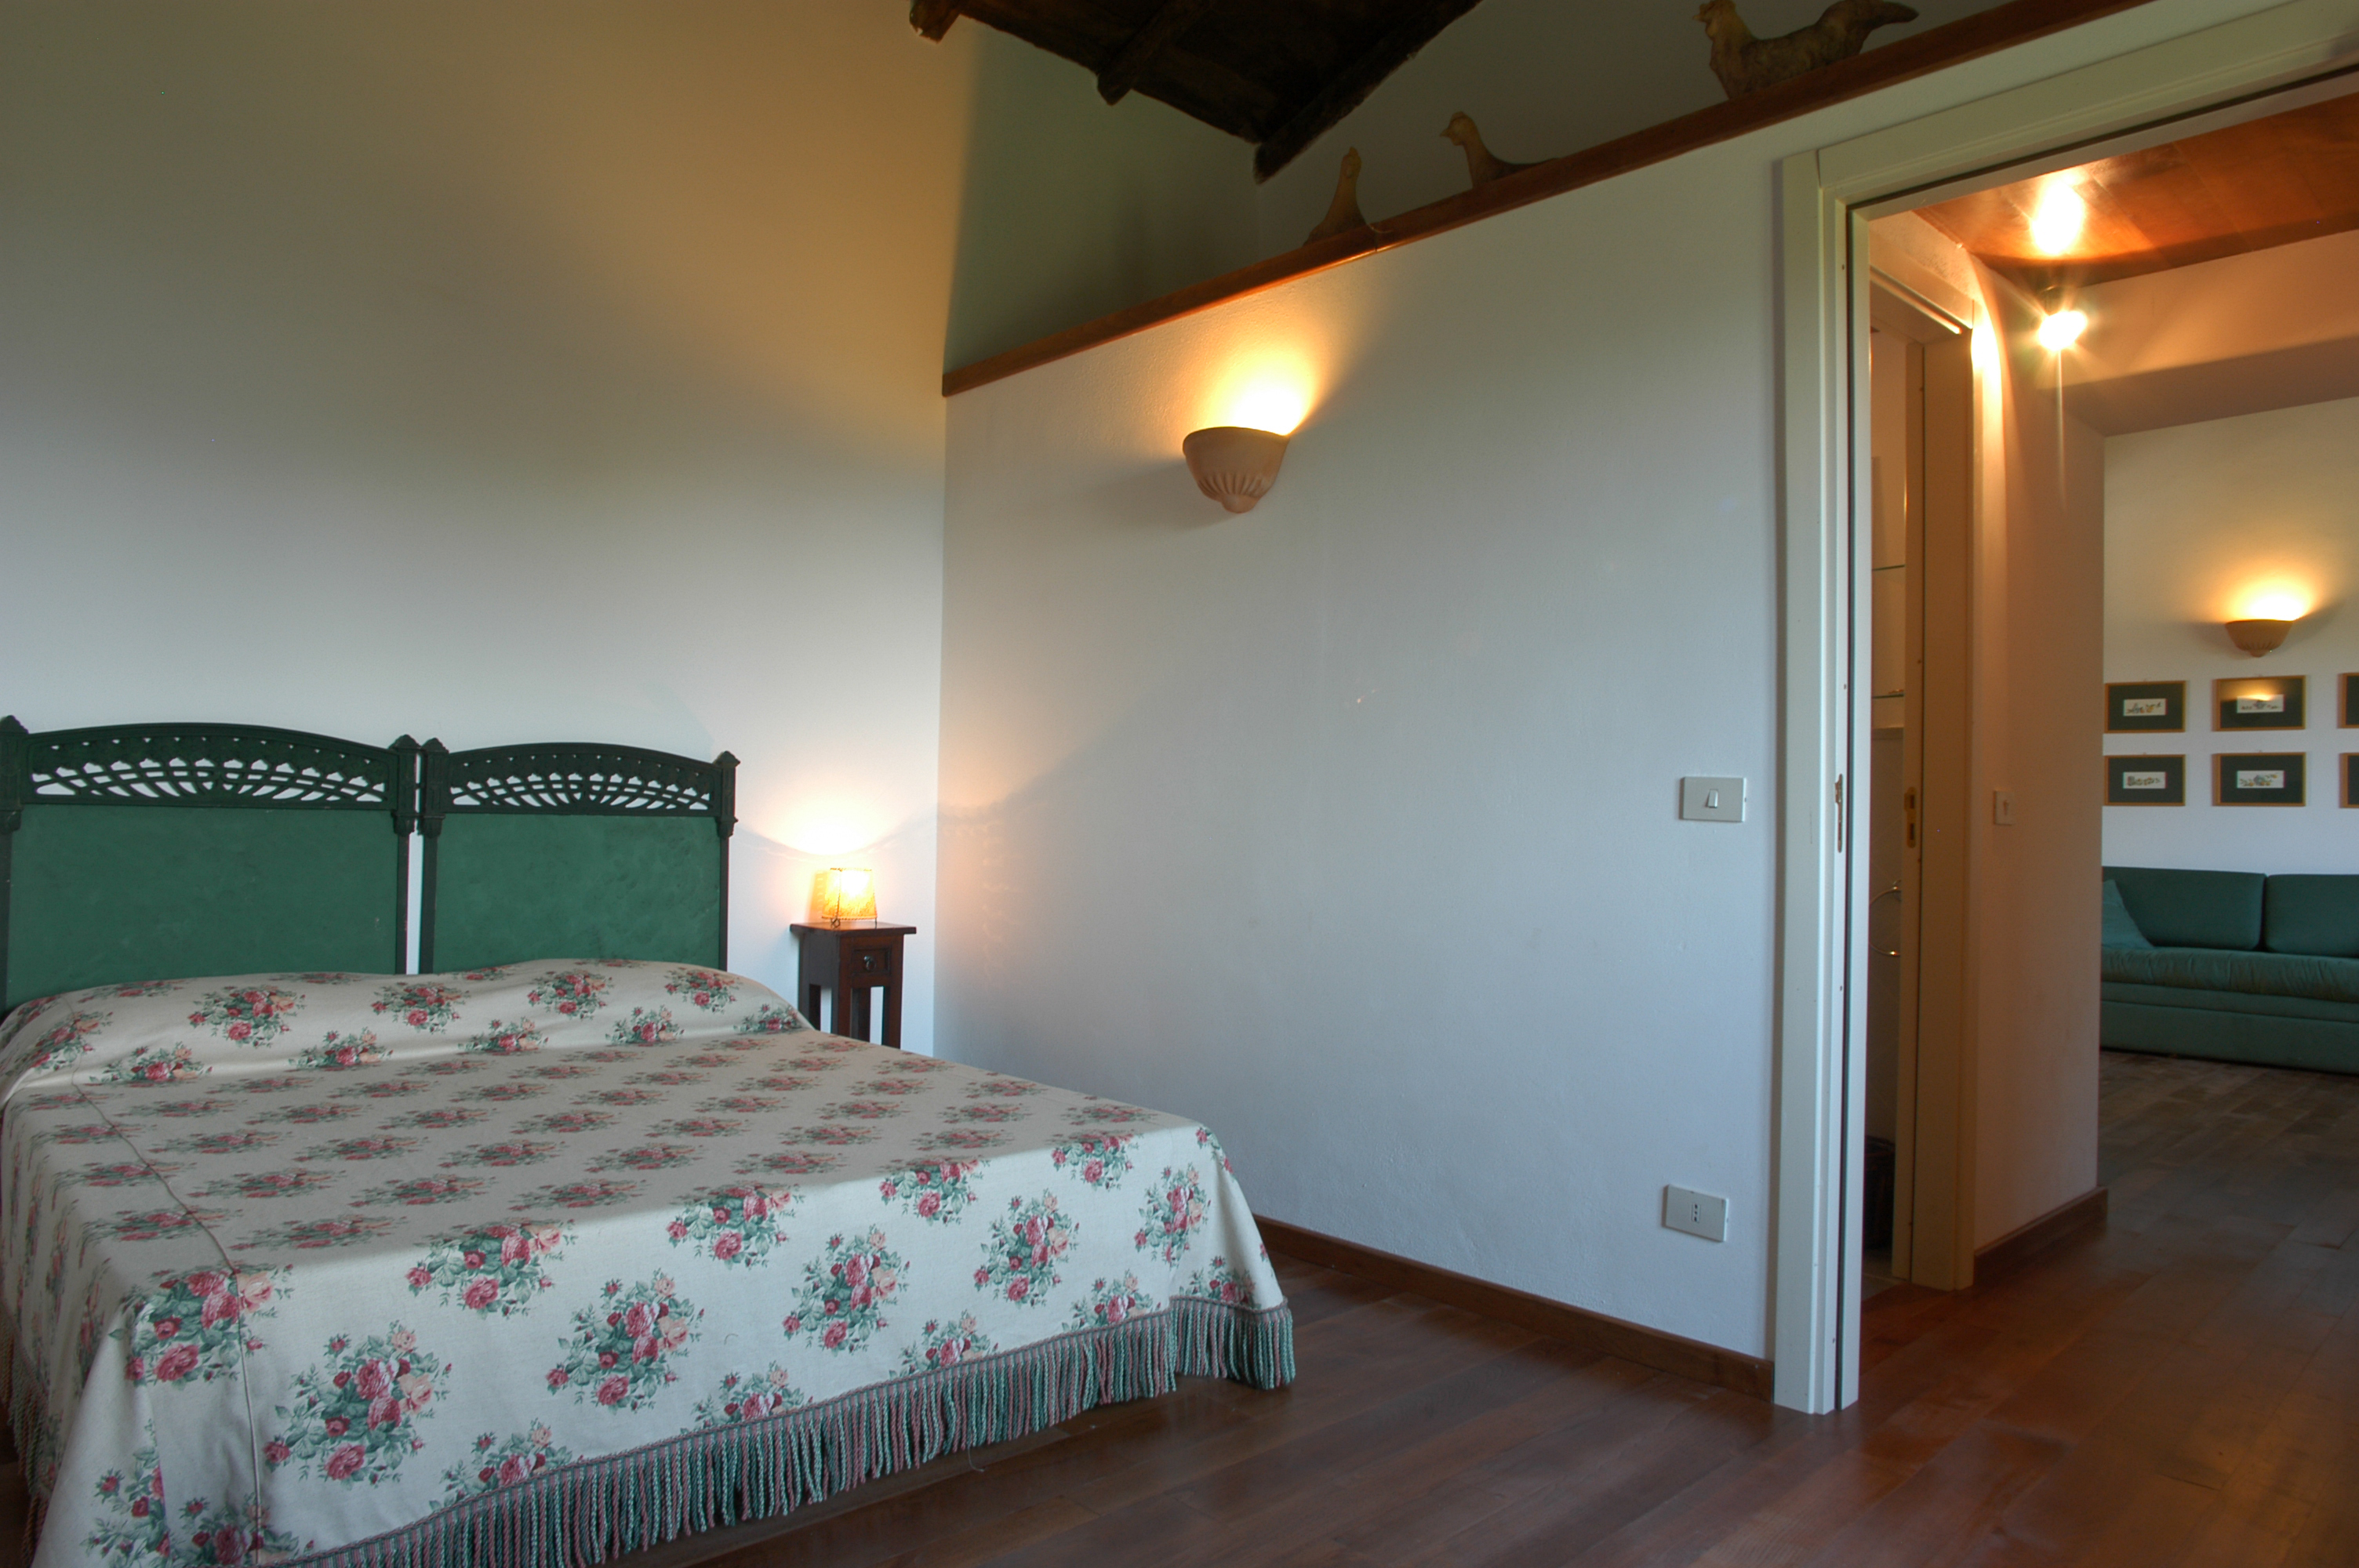 https://www.agriturismovallemaira.it/wp-content/uploads/2015/06/13.jpg